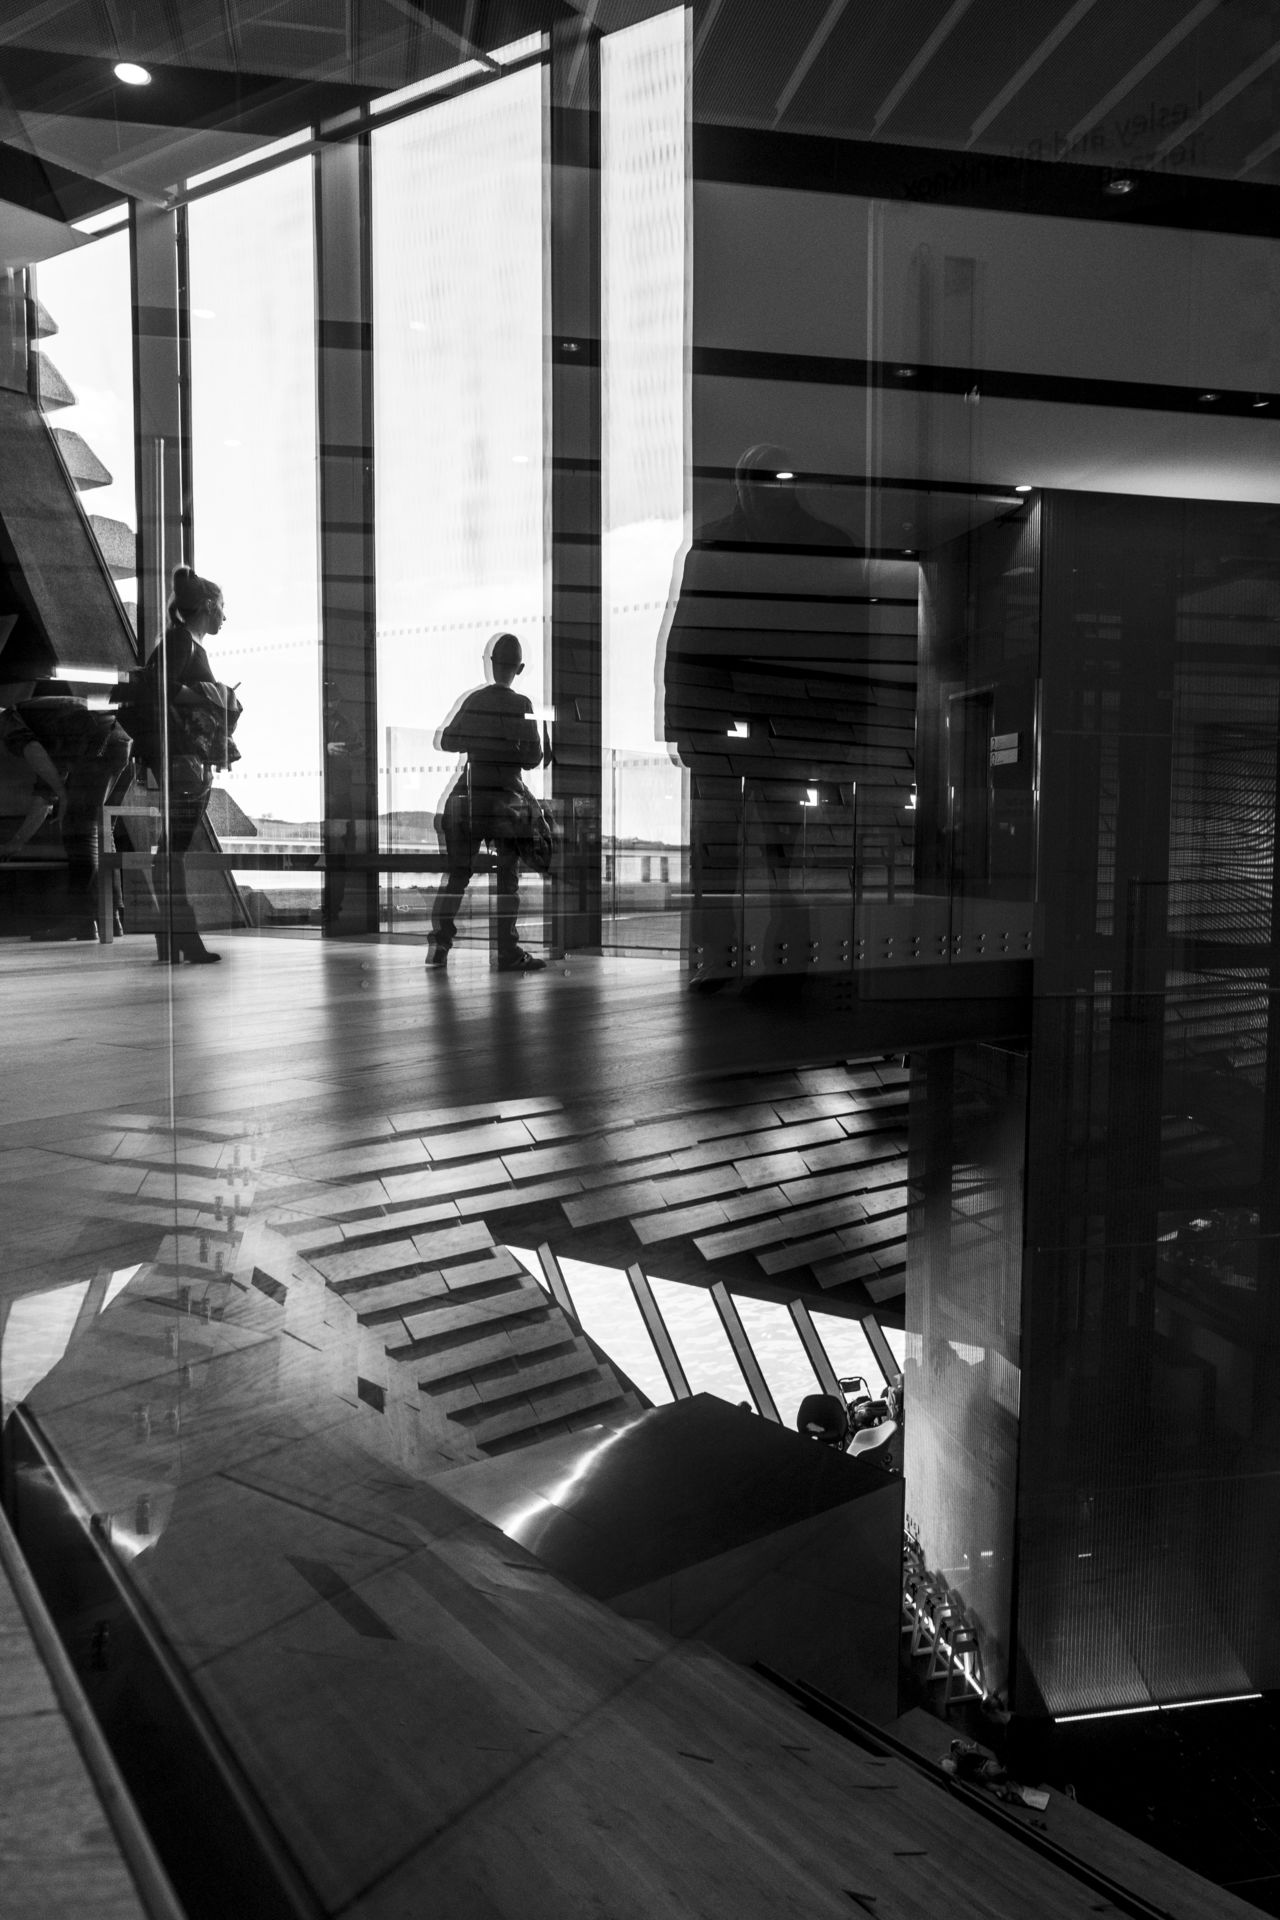 A photo taken in V&A Dundee of a reflection in a glass balustrade, showing the upper hall's large windows and people milling about. Through the glass, you can make out the lower hall and the lift shaft. Black and white.